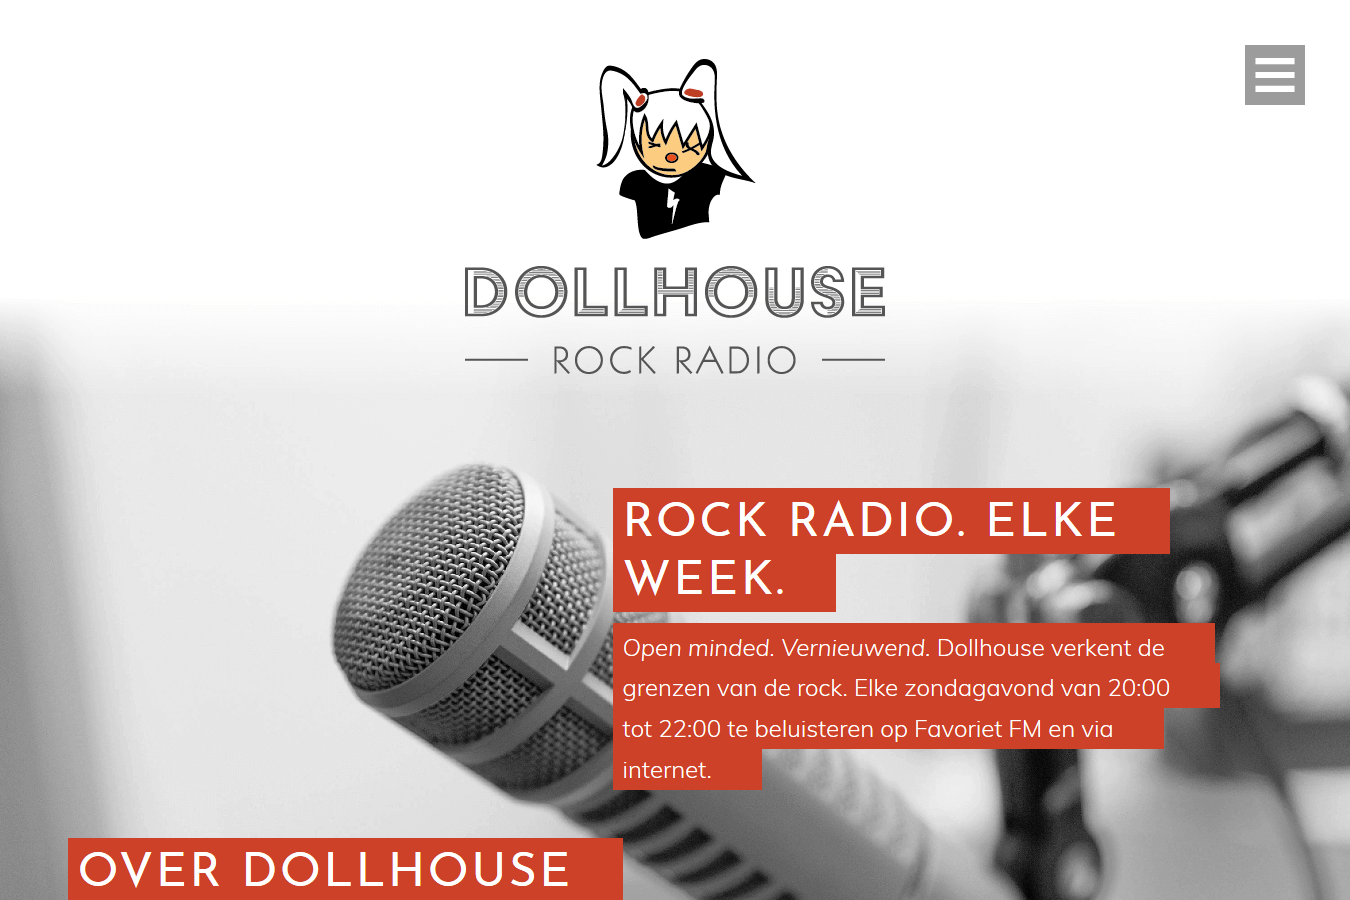 Dollhouse Rock Radio